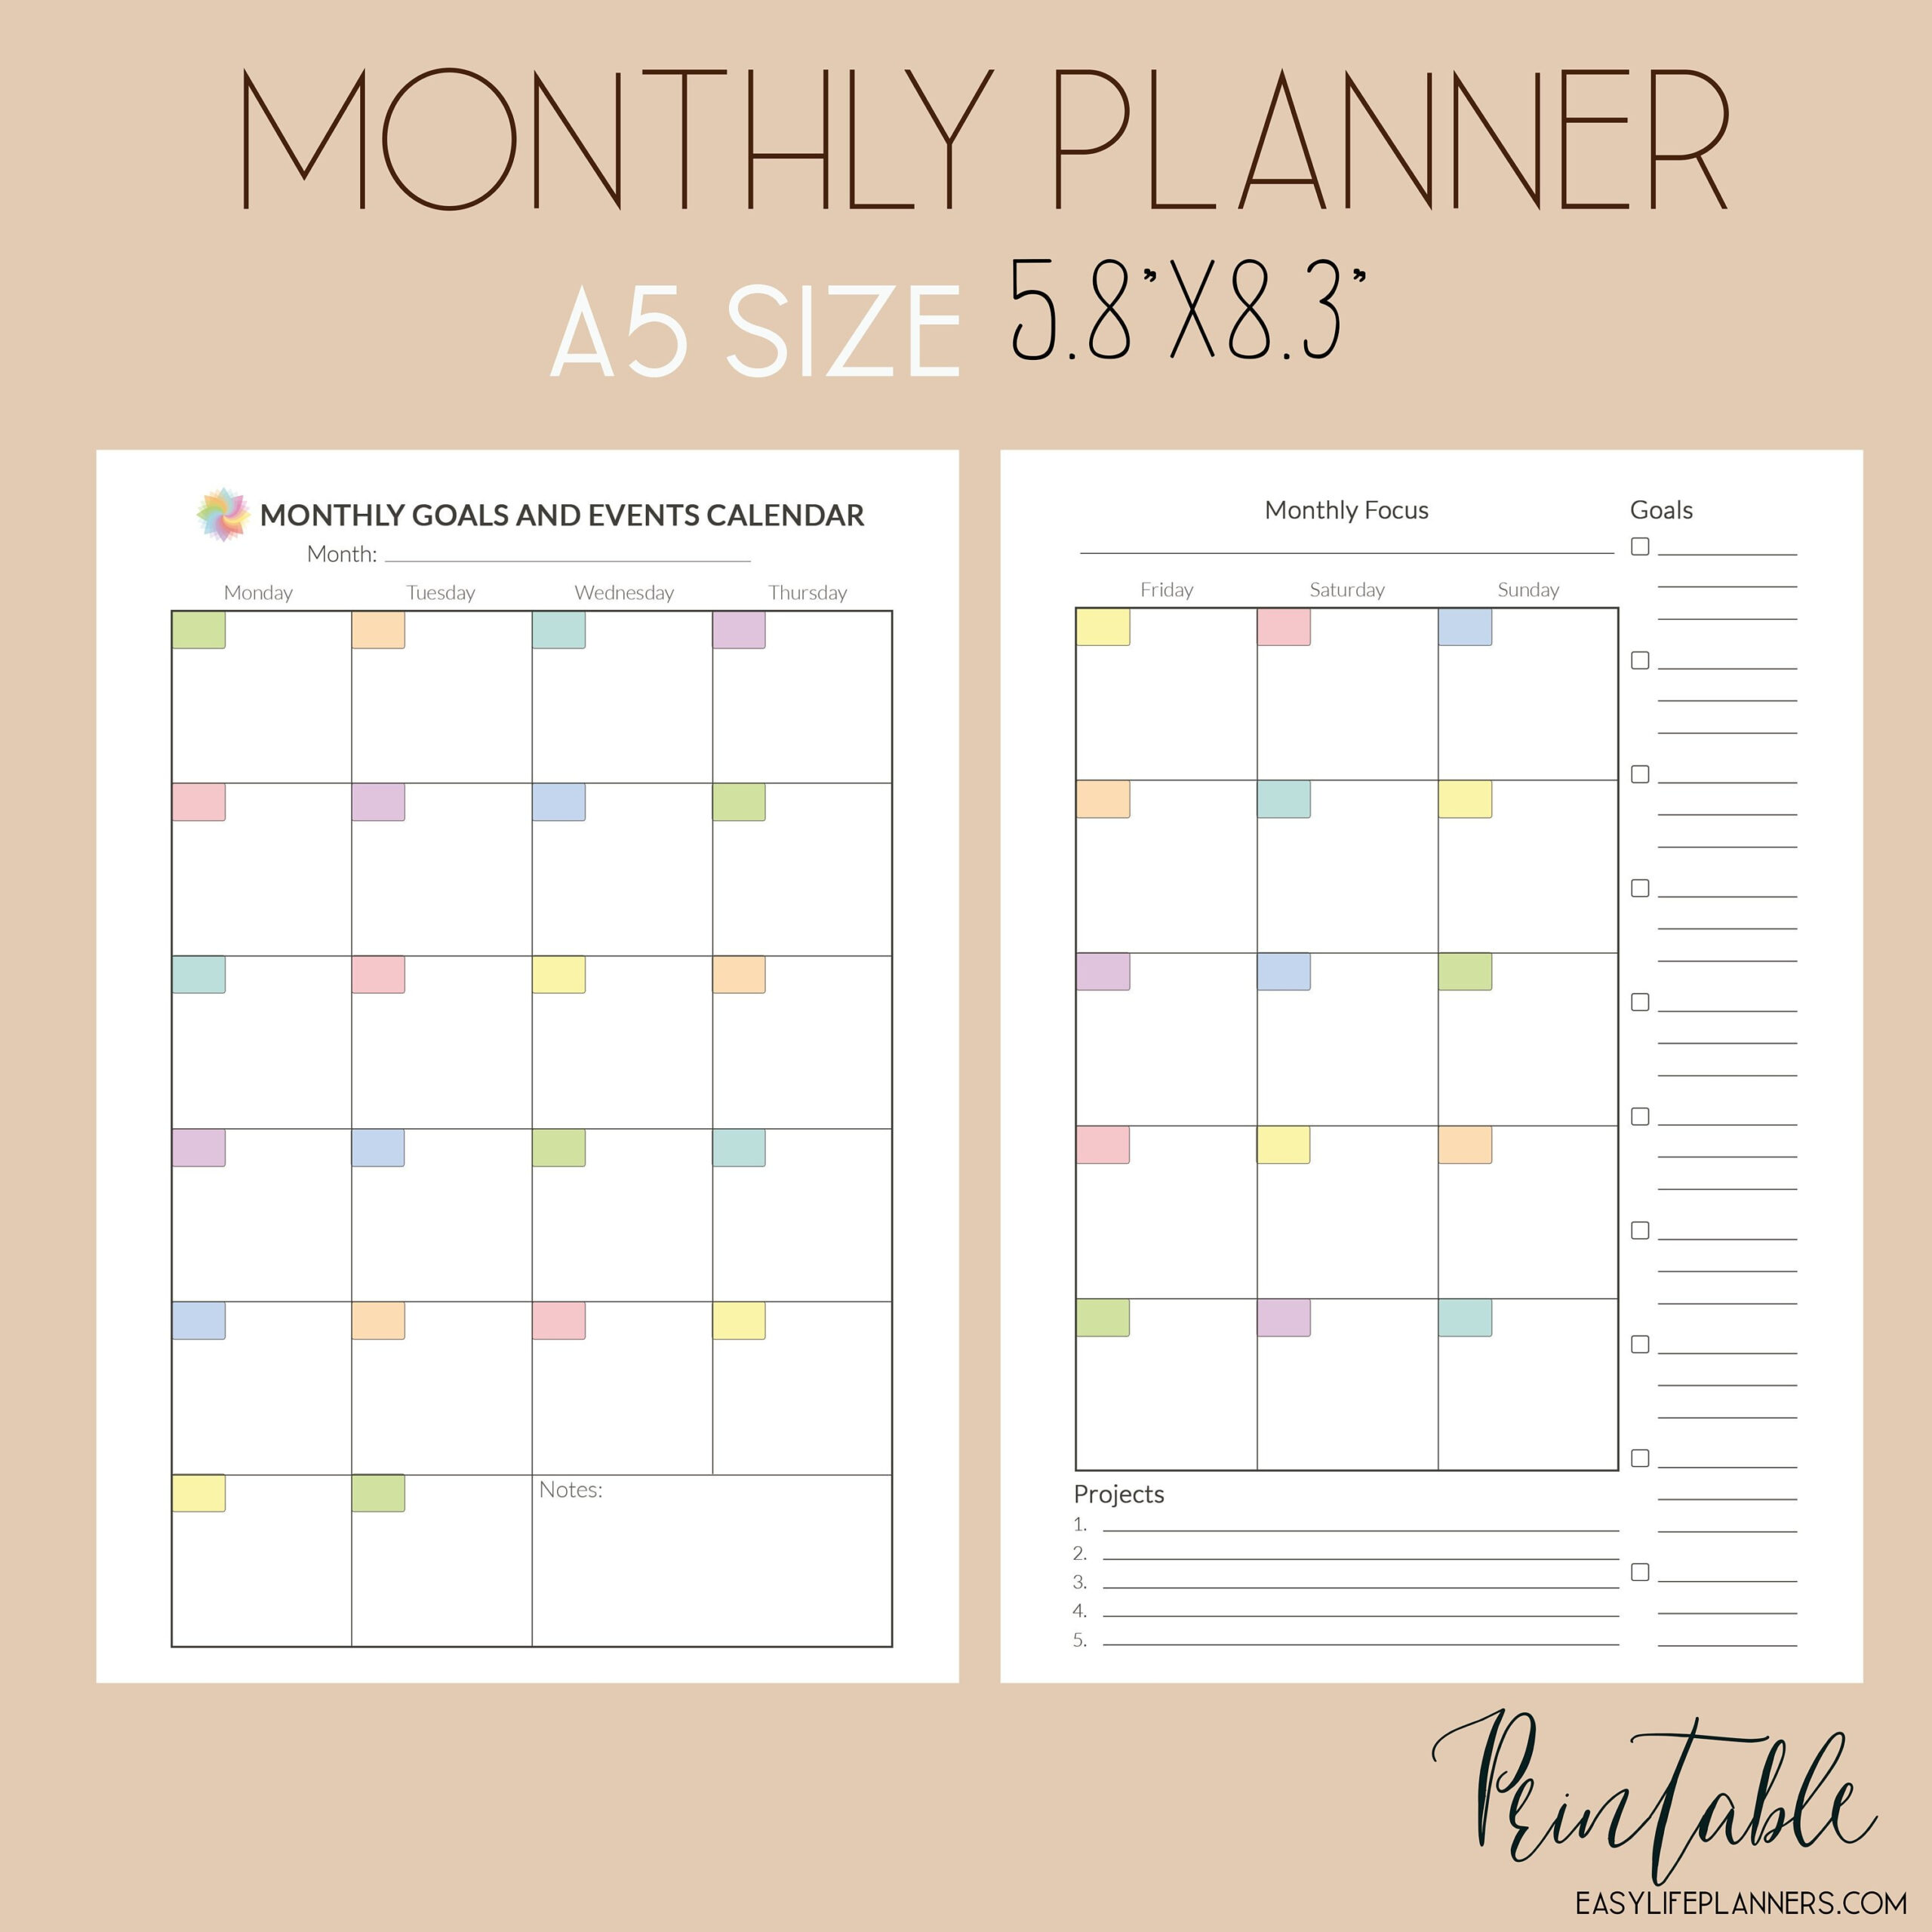 A5 Planner Inserts Monthly Planner Printable Pdf Monthly intended for Planner Insert Printables Book Photo